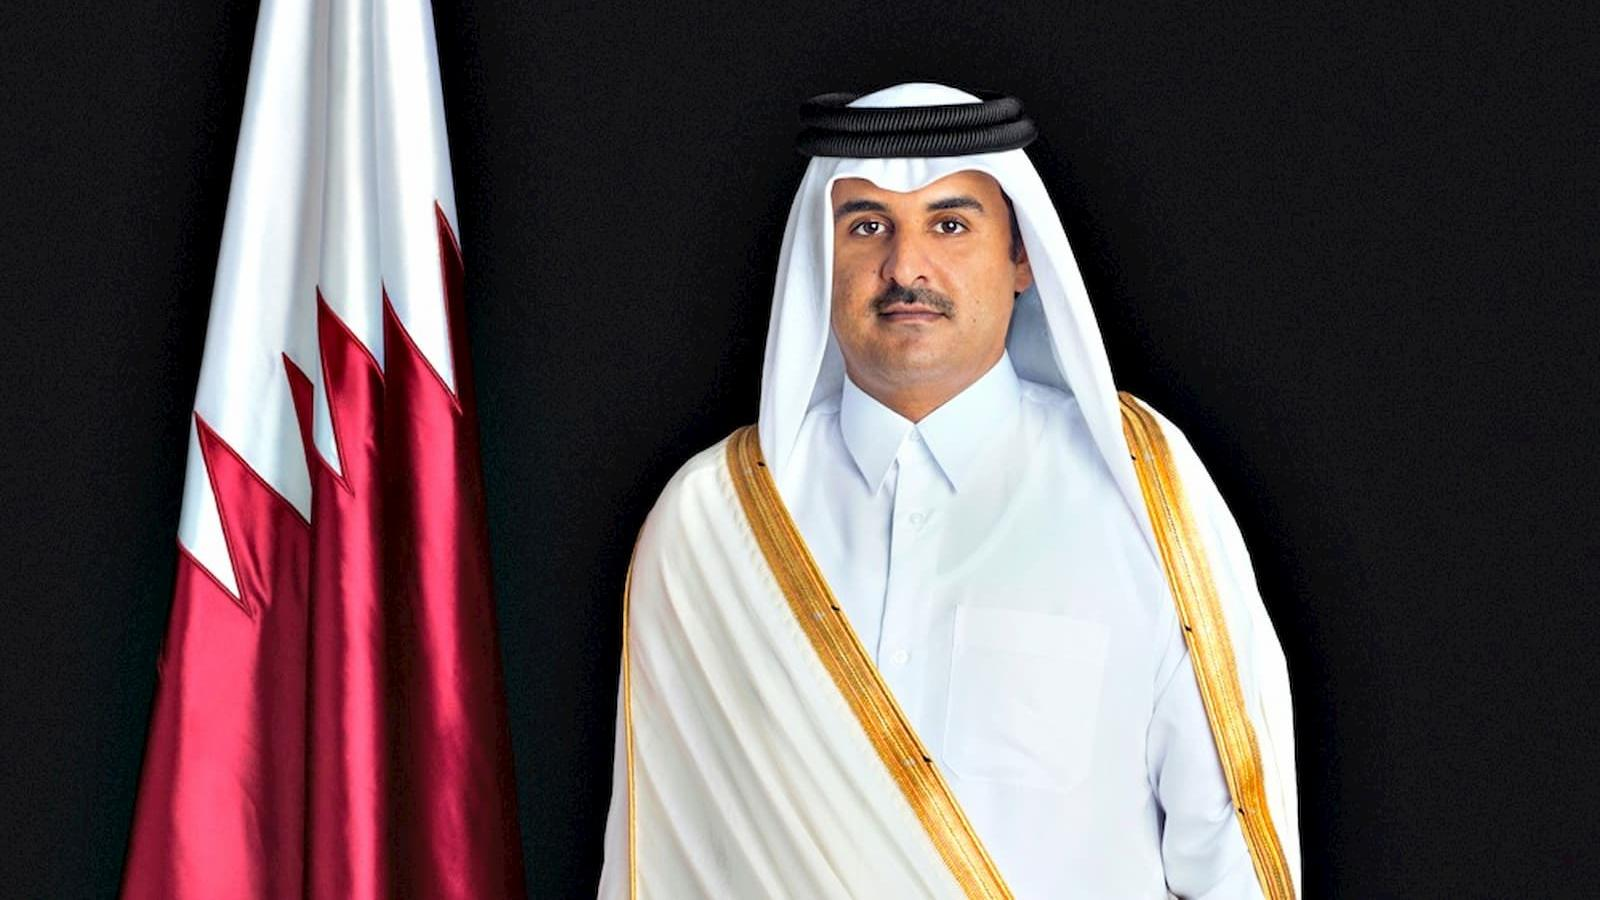 HH the Amir names Qatar's new Prime Minister